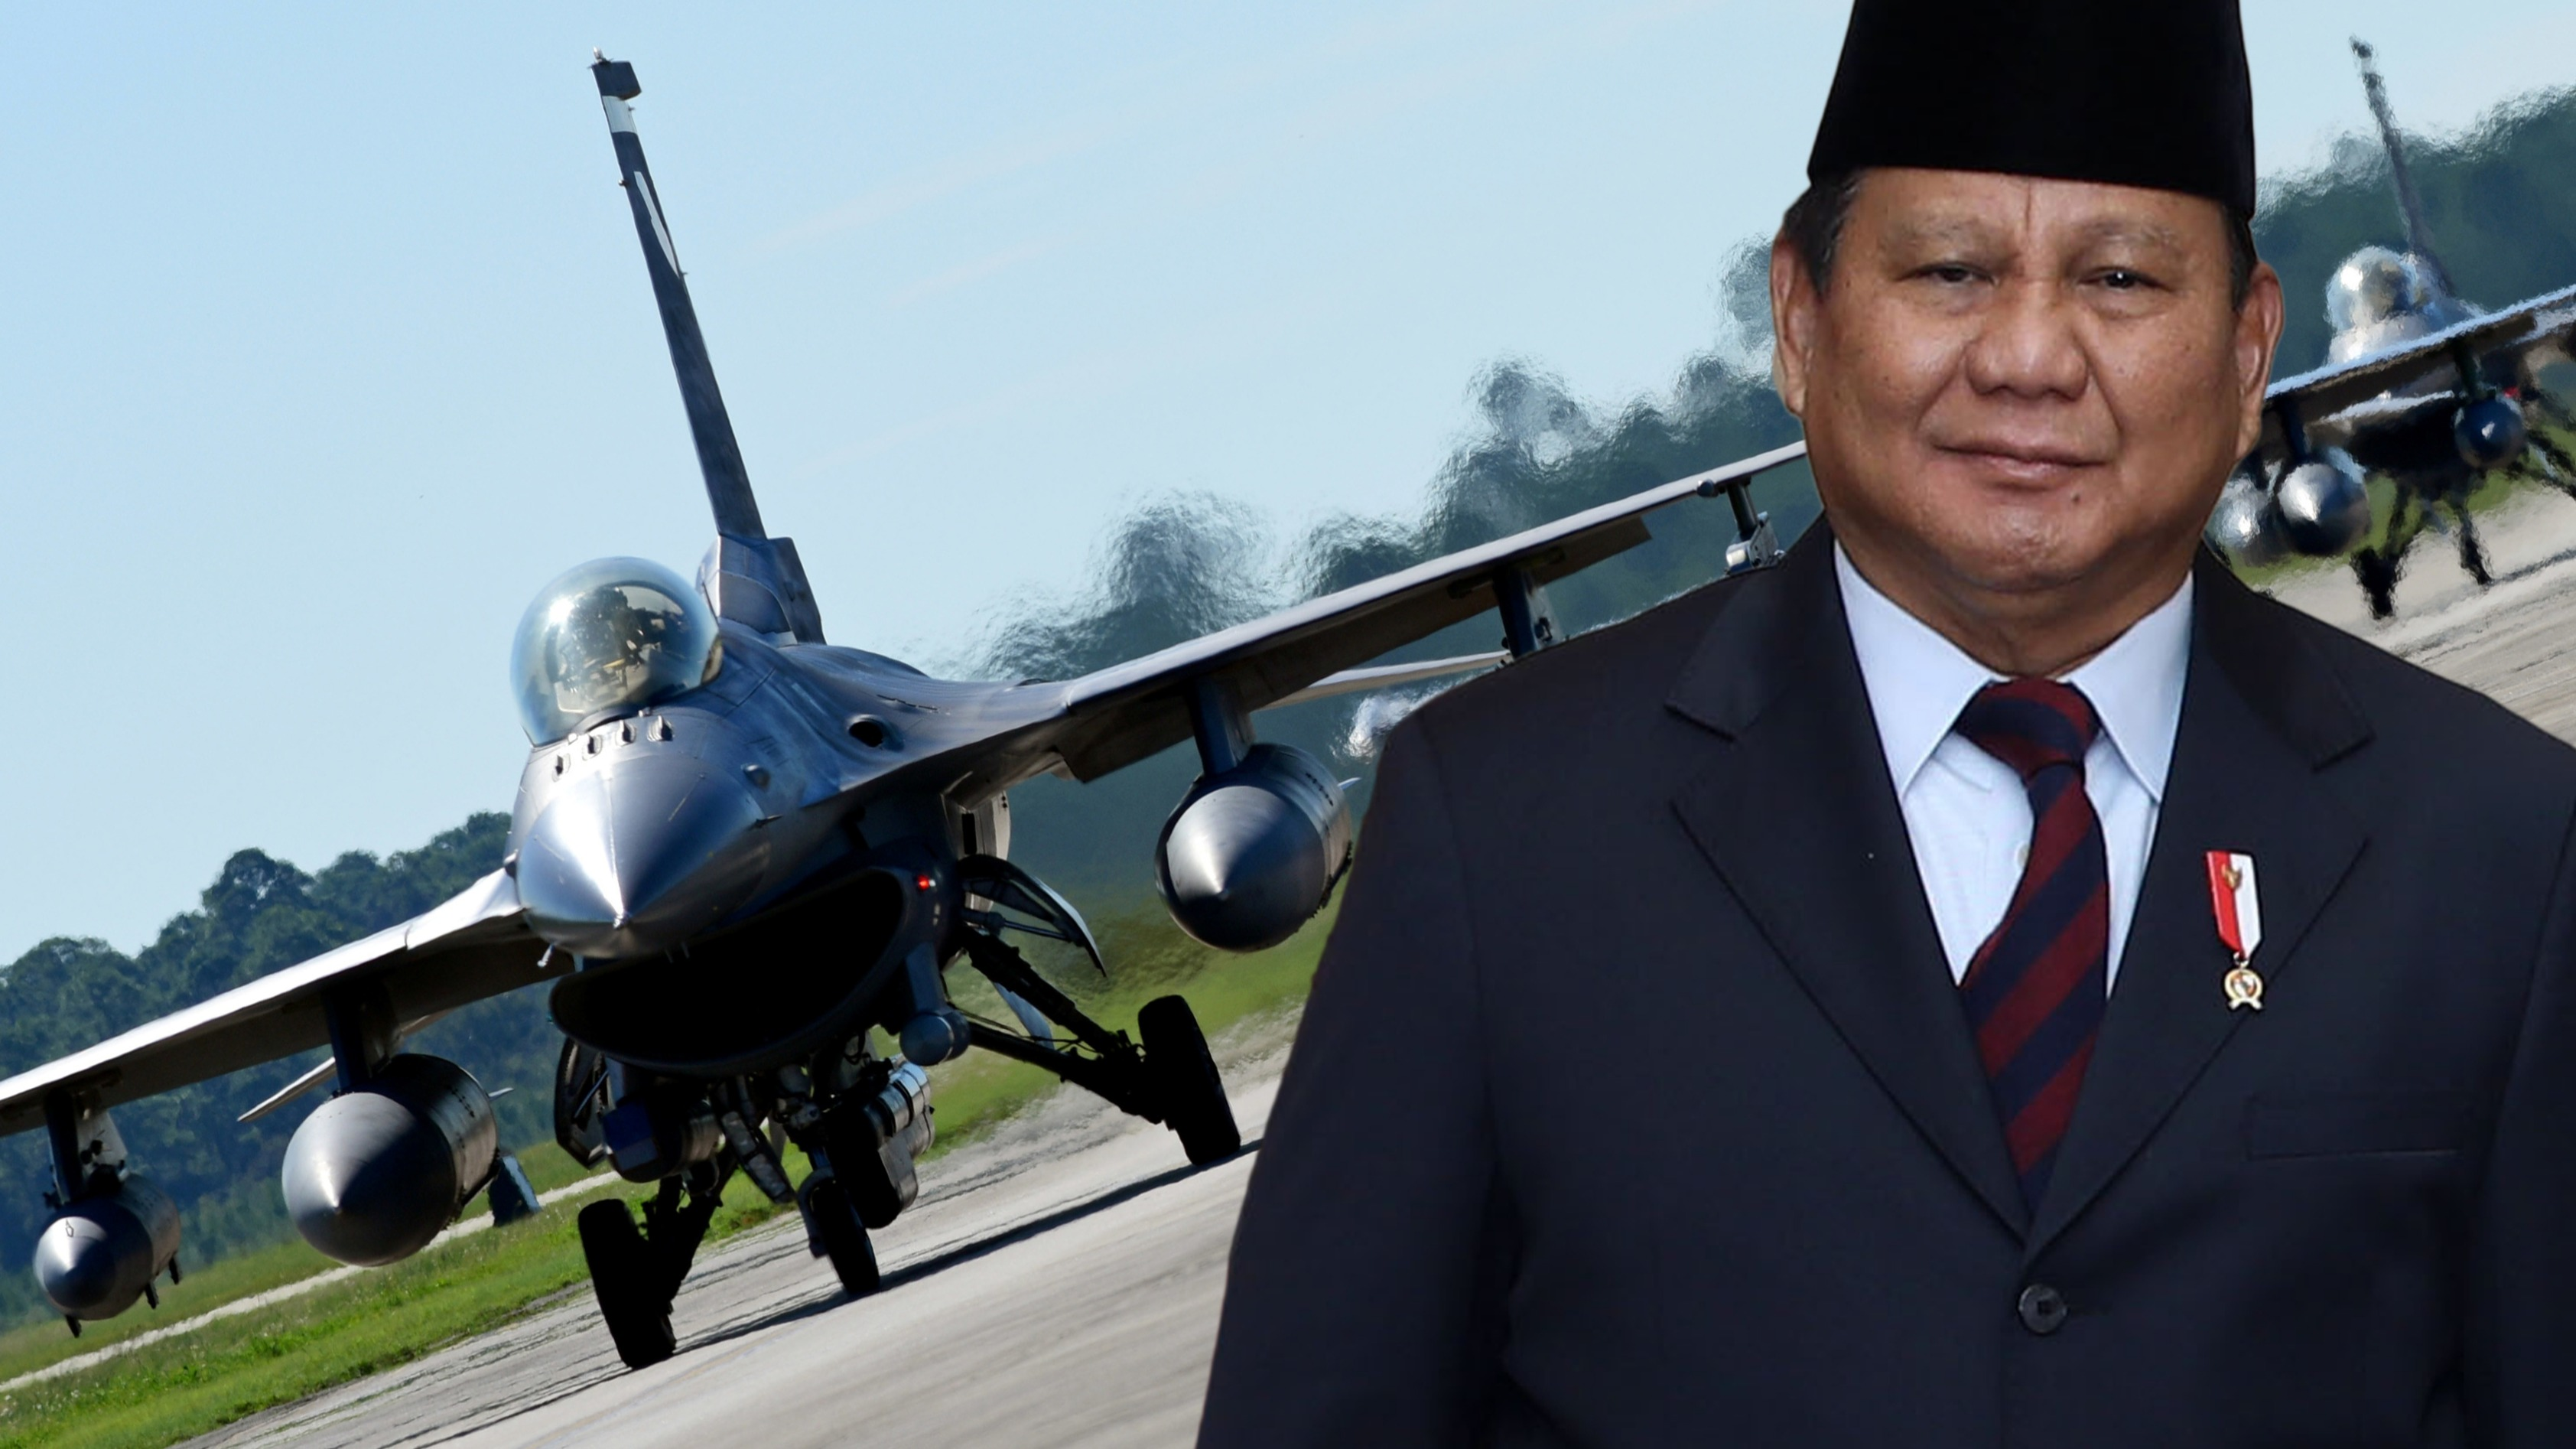 Indonesia's Prabowo trots globe to cut fighter jet deal - Nikkei Asia